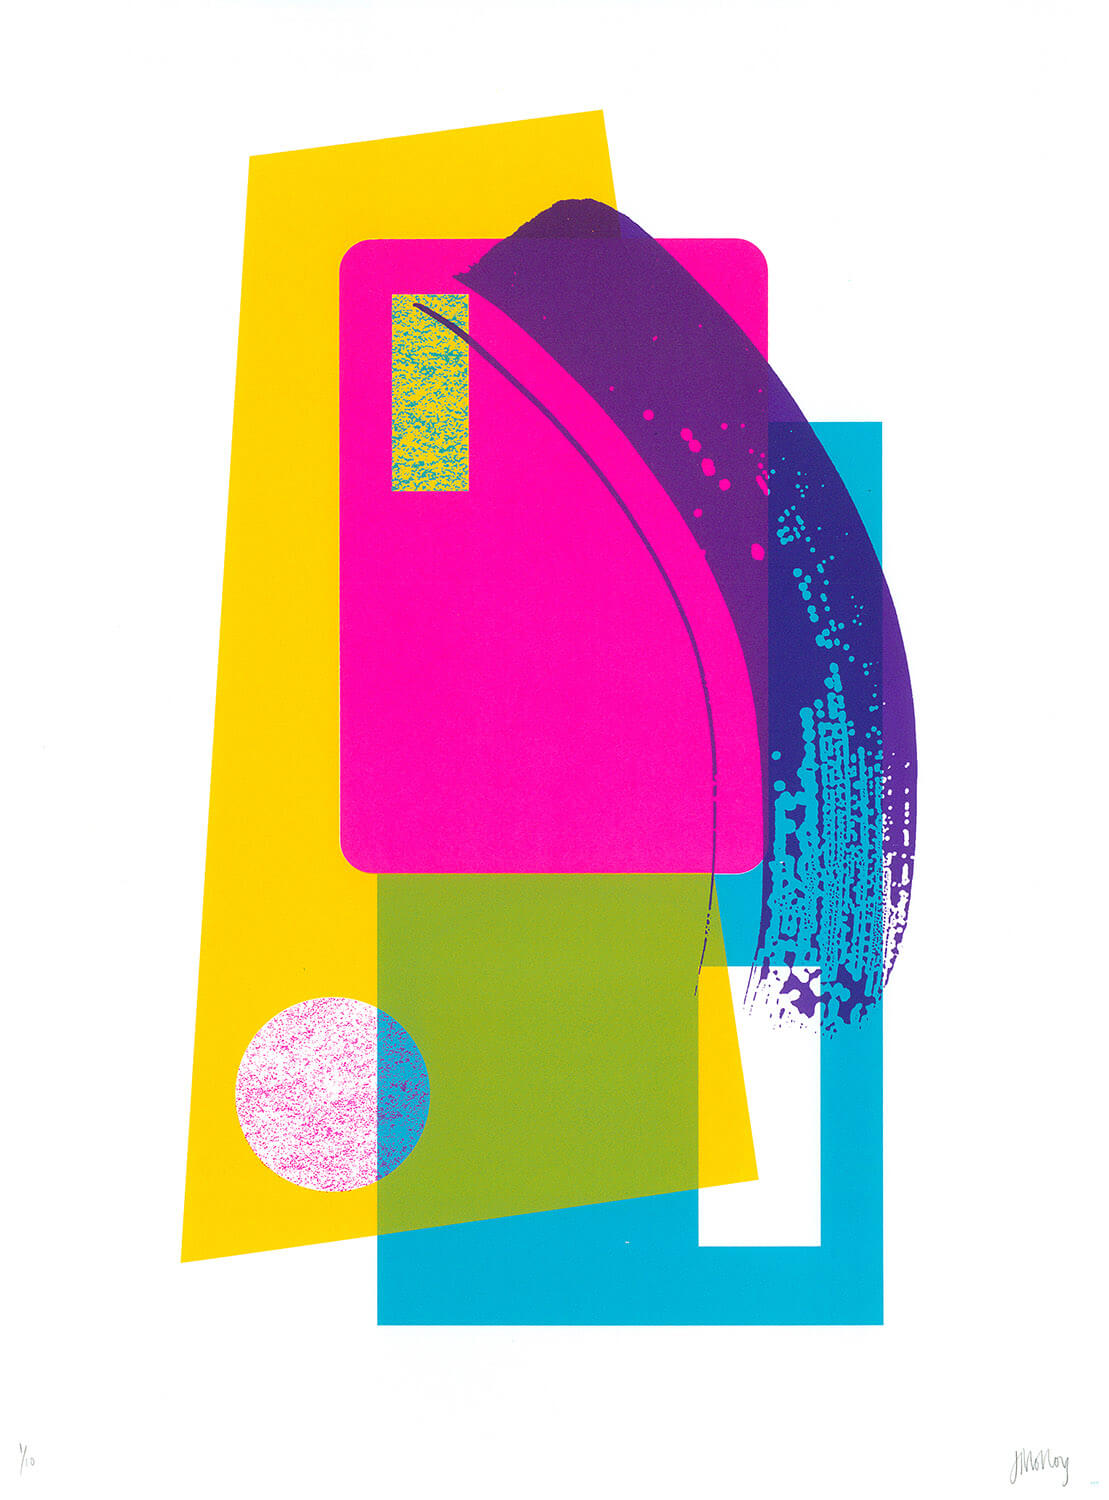 Abstract pop art screenprint in yellow, pink & blue, with purple brushstroke effect, in a limited edition by Josie Blue Molloy